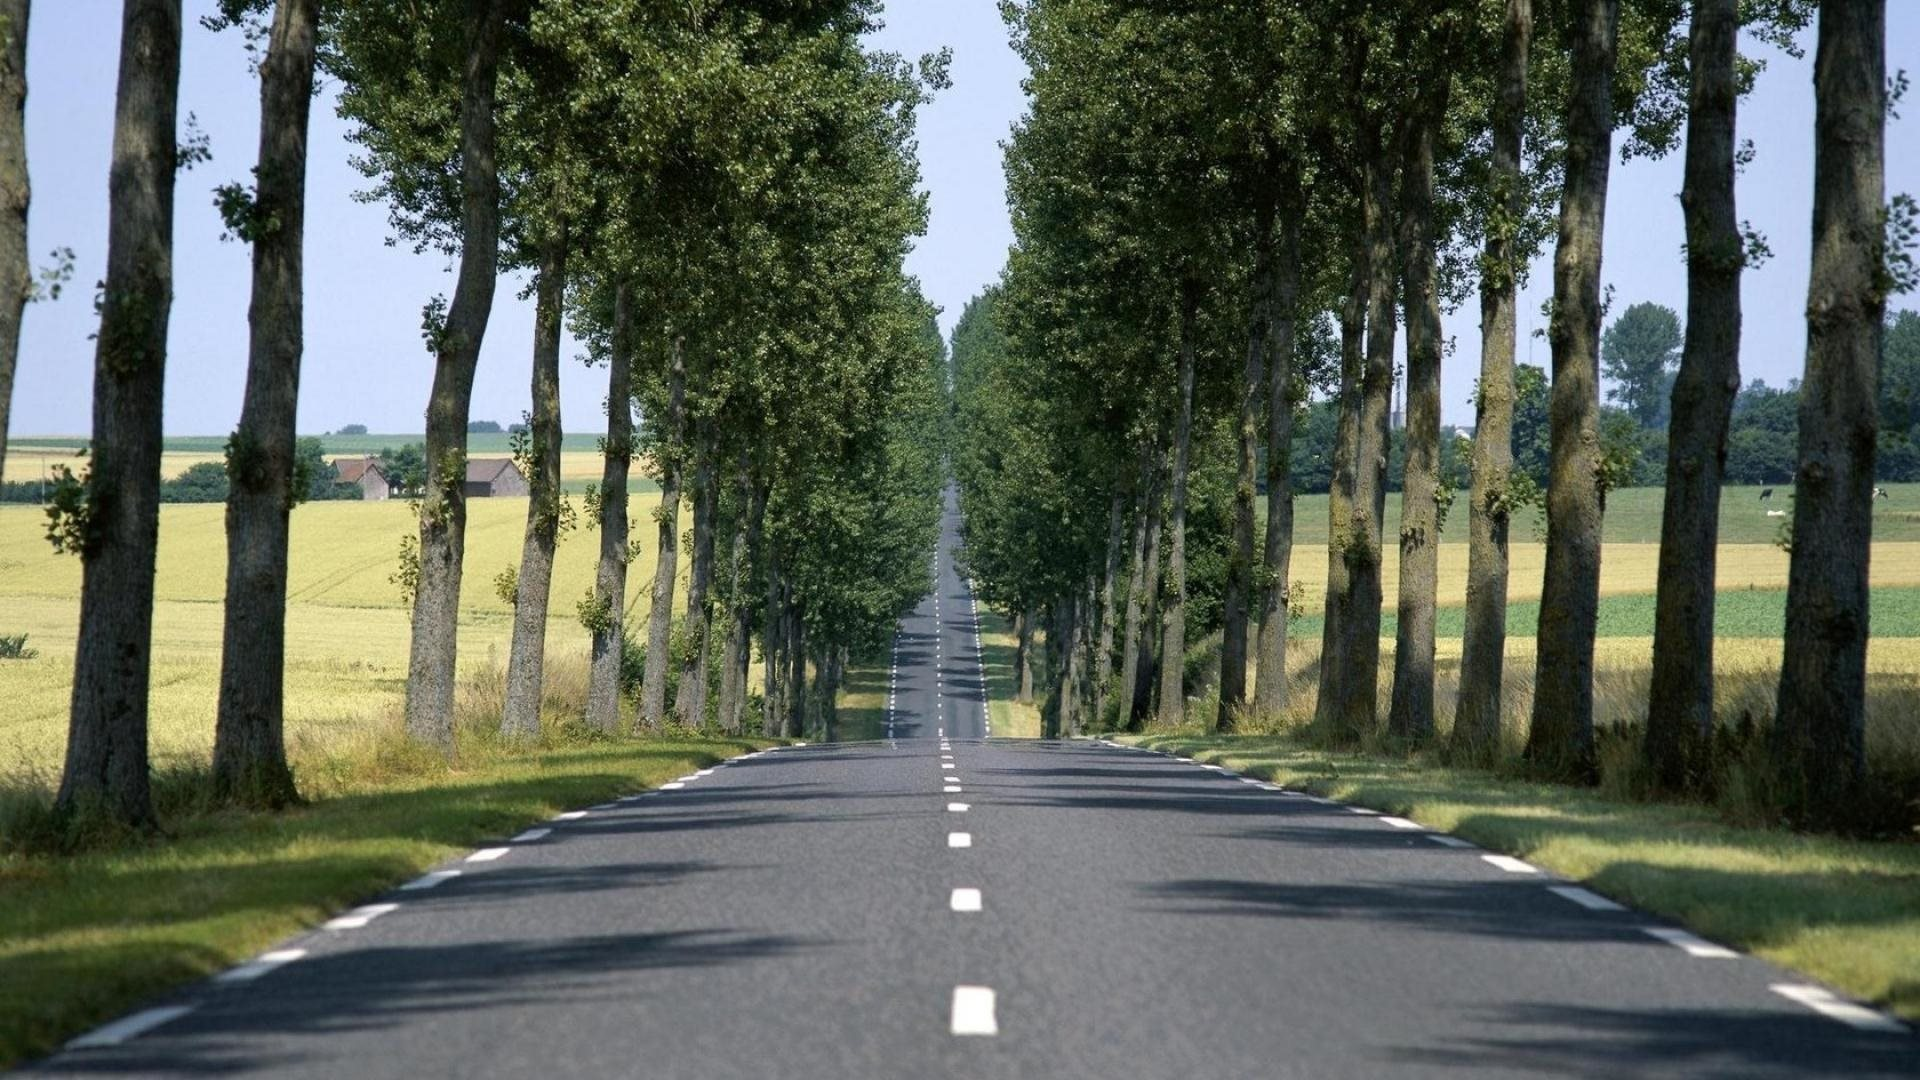 Straight Road Lined By Trees 1920 X 1080